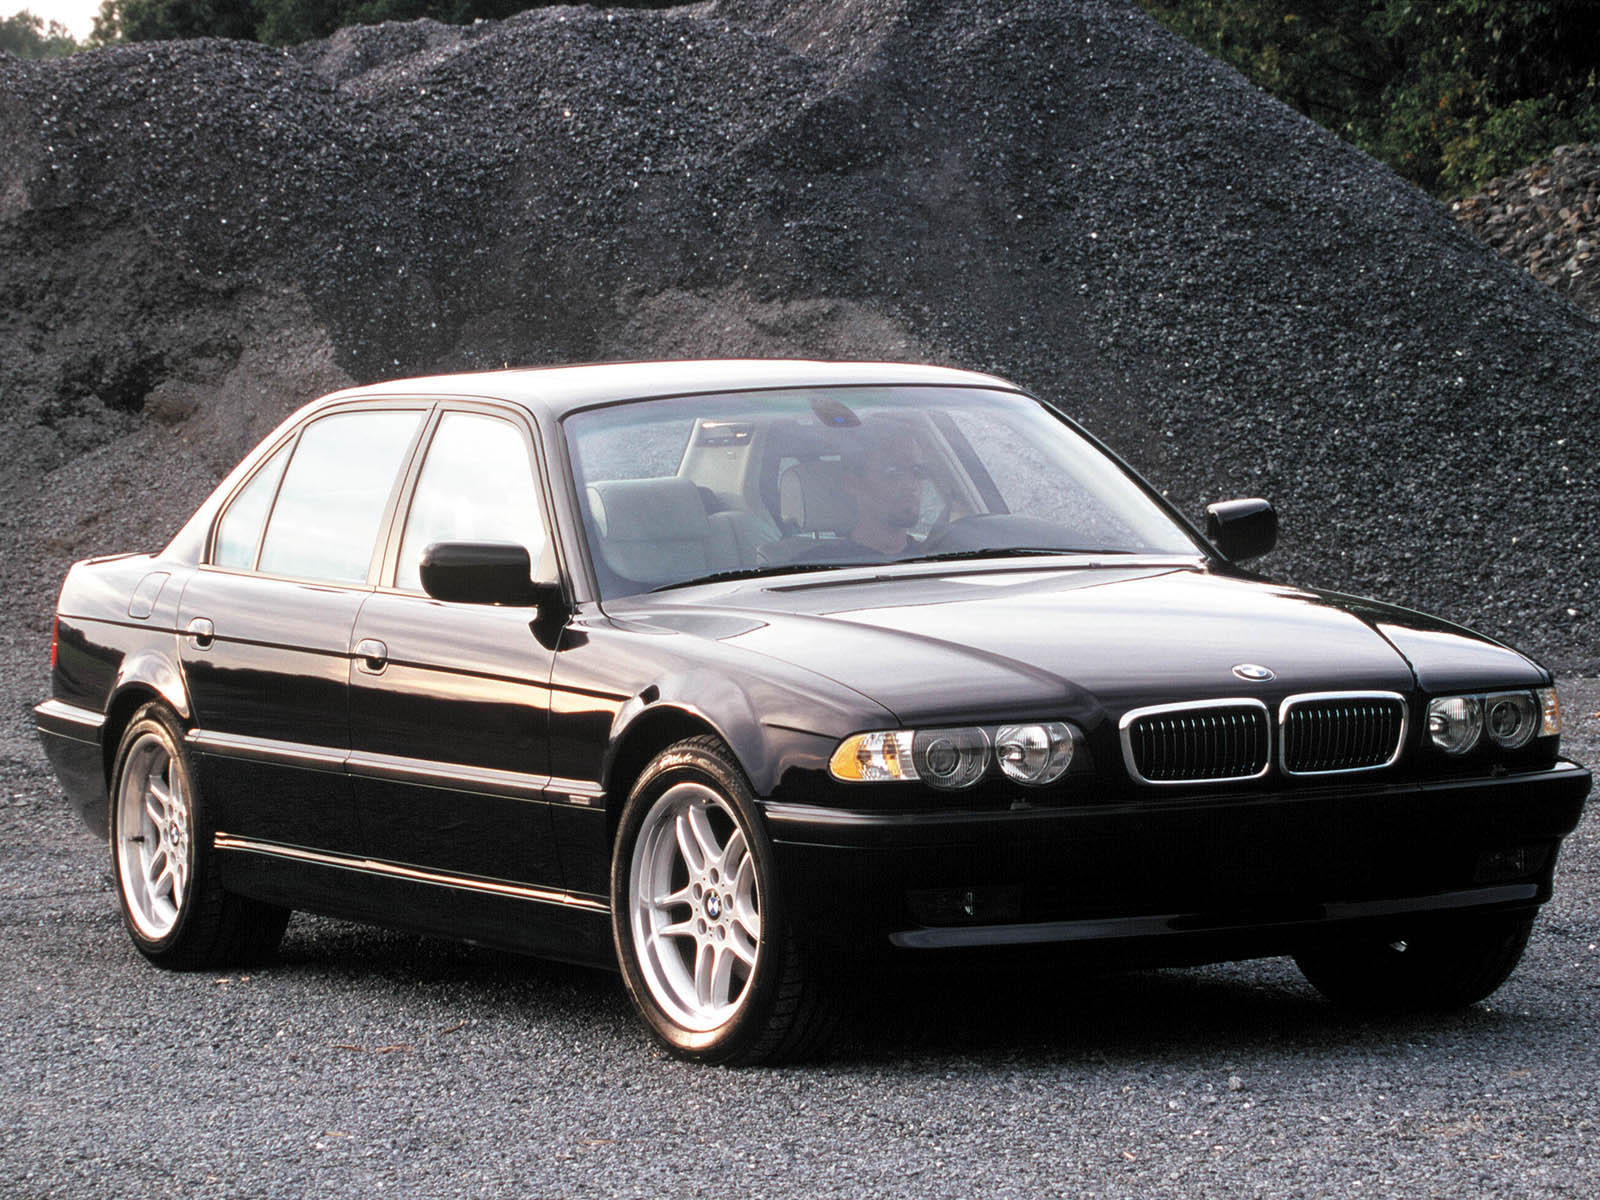 bmw 7 series e38 picture 10107 bmw photo gallery. Black Bedroom Furniture Sets. Home Design Ideas